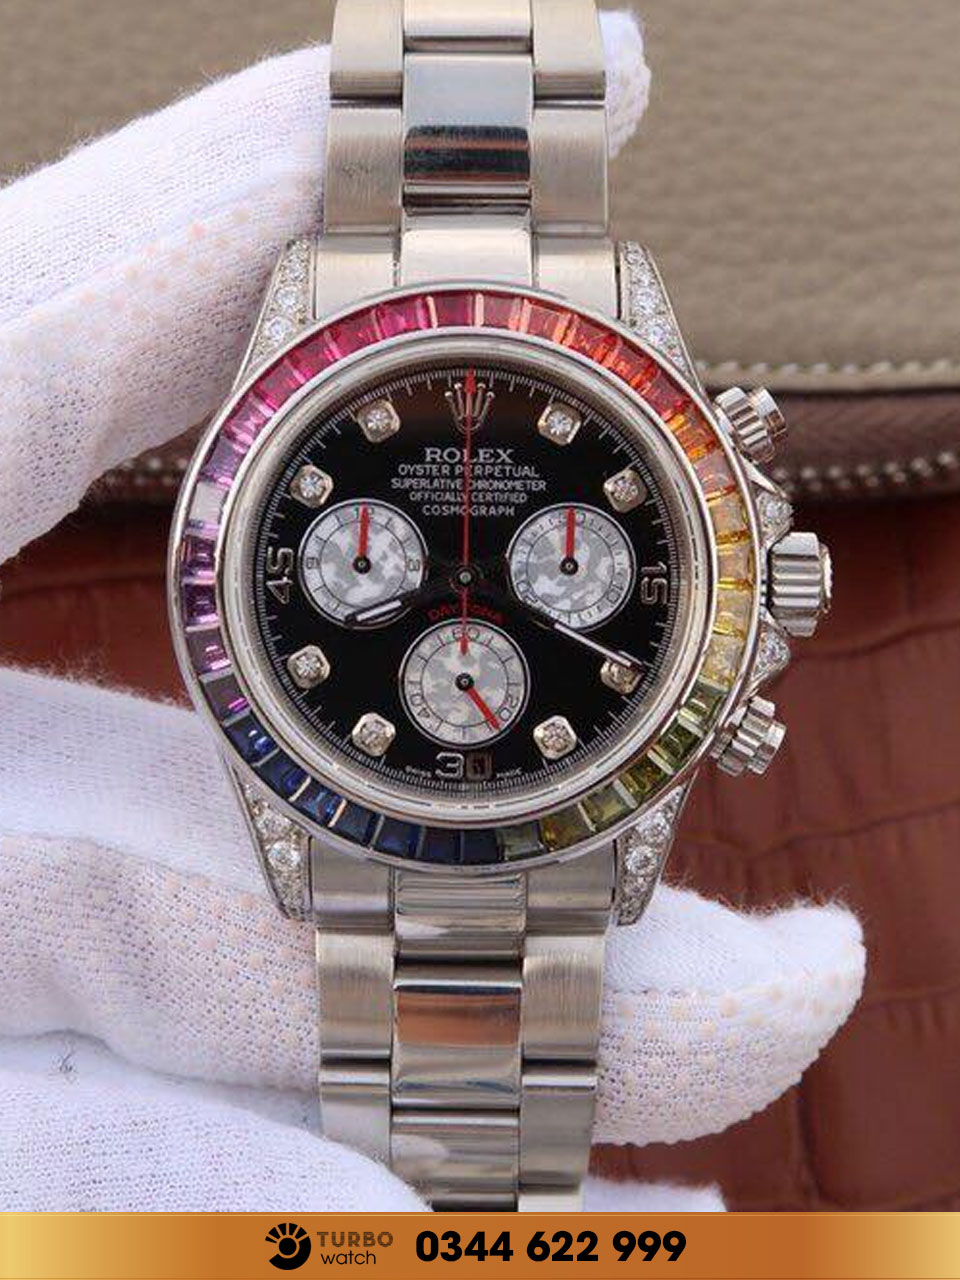 Rolex  Cosmograph Daytona Rainbow 18K White Gold Watch 116599 fake 1-1 siêu cấp